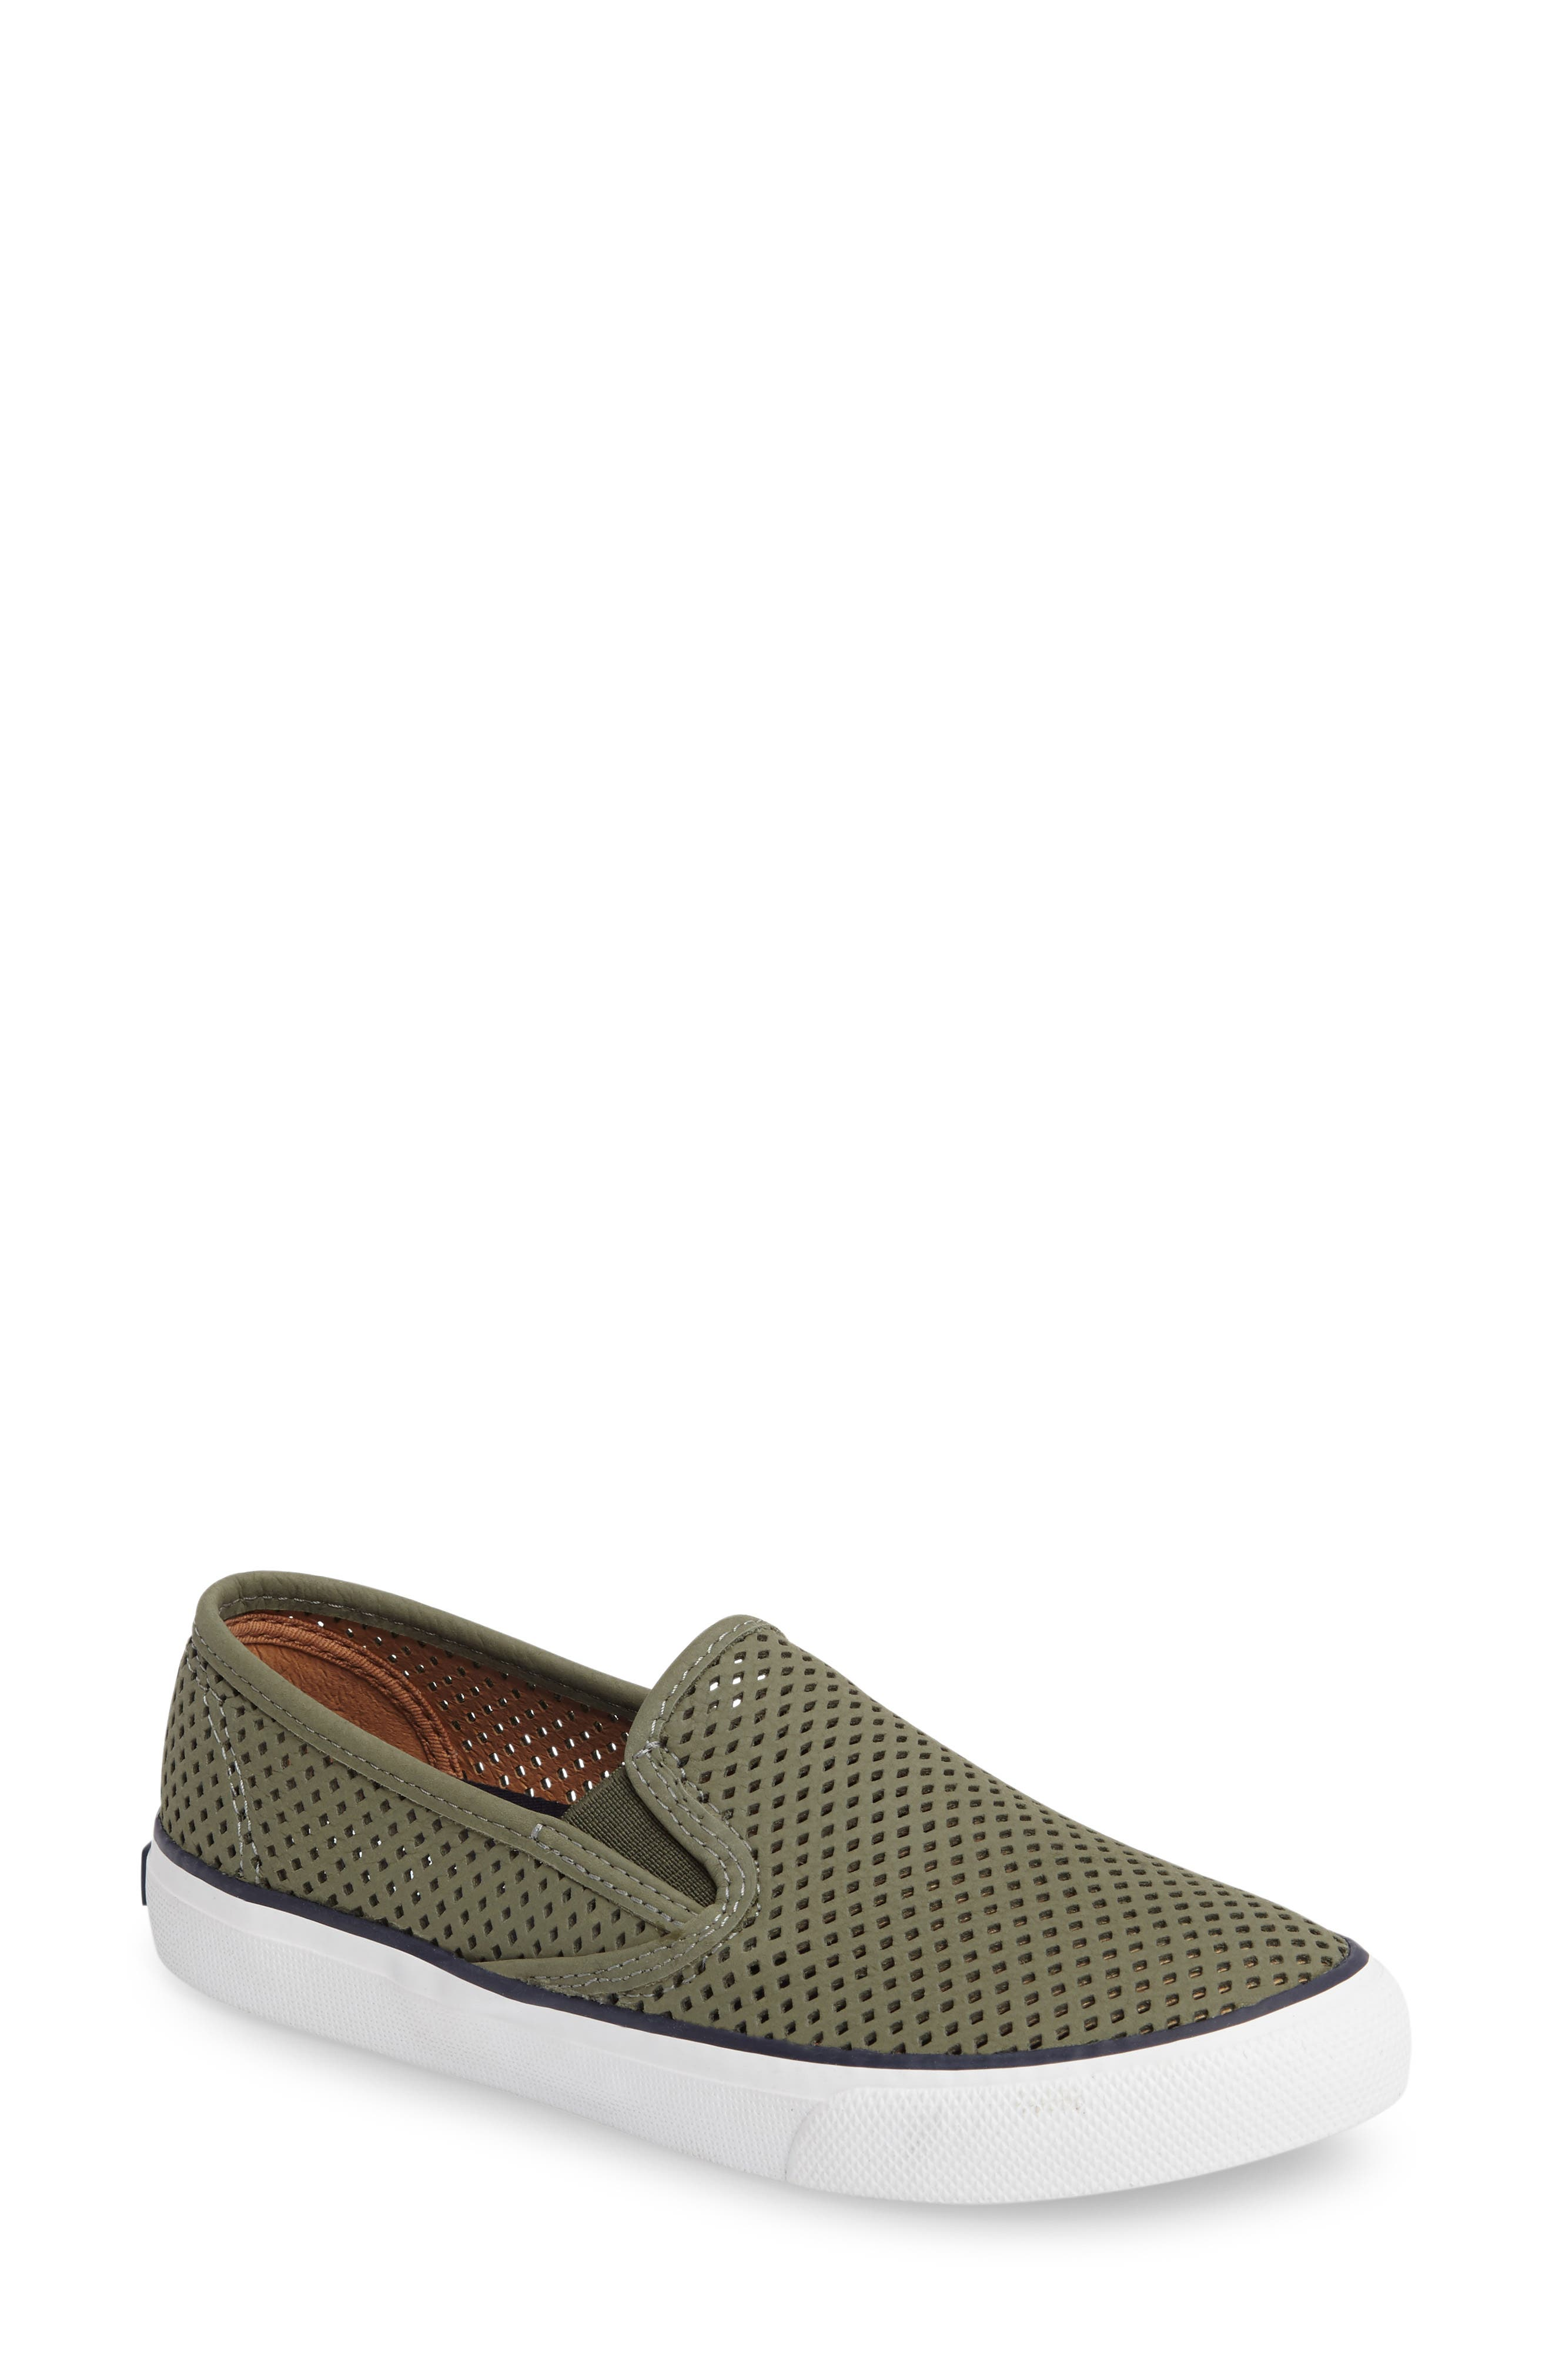 'Seaside' Perforated Slip-On Sneaker,                             Main thumbnail 7, color,